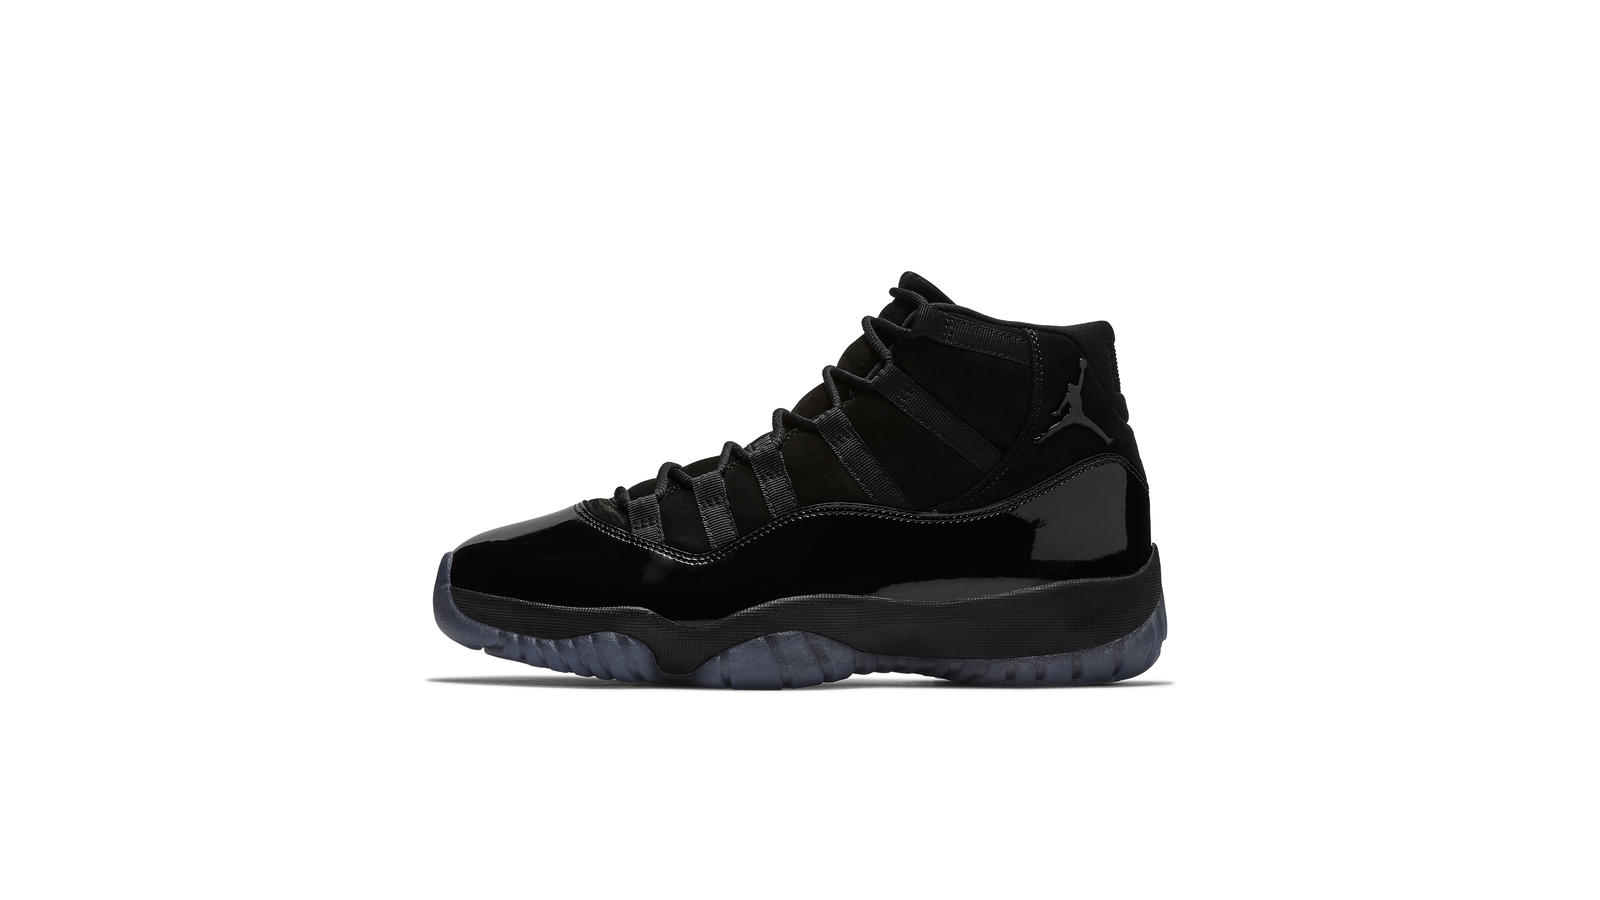 676145f300b Nike Air Jordan 11 Cap and Gown - Nike News